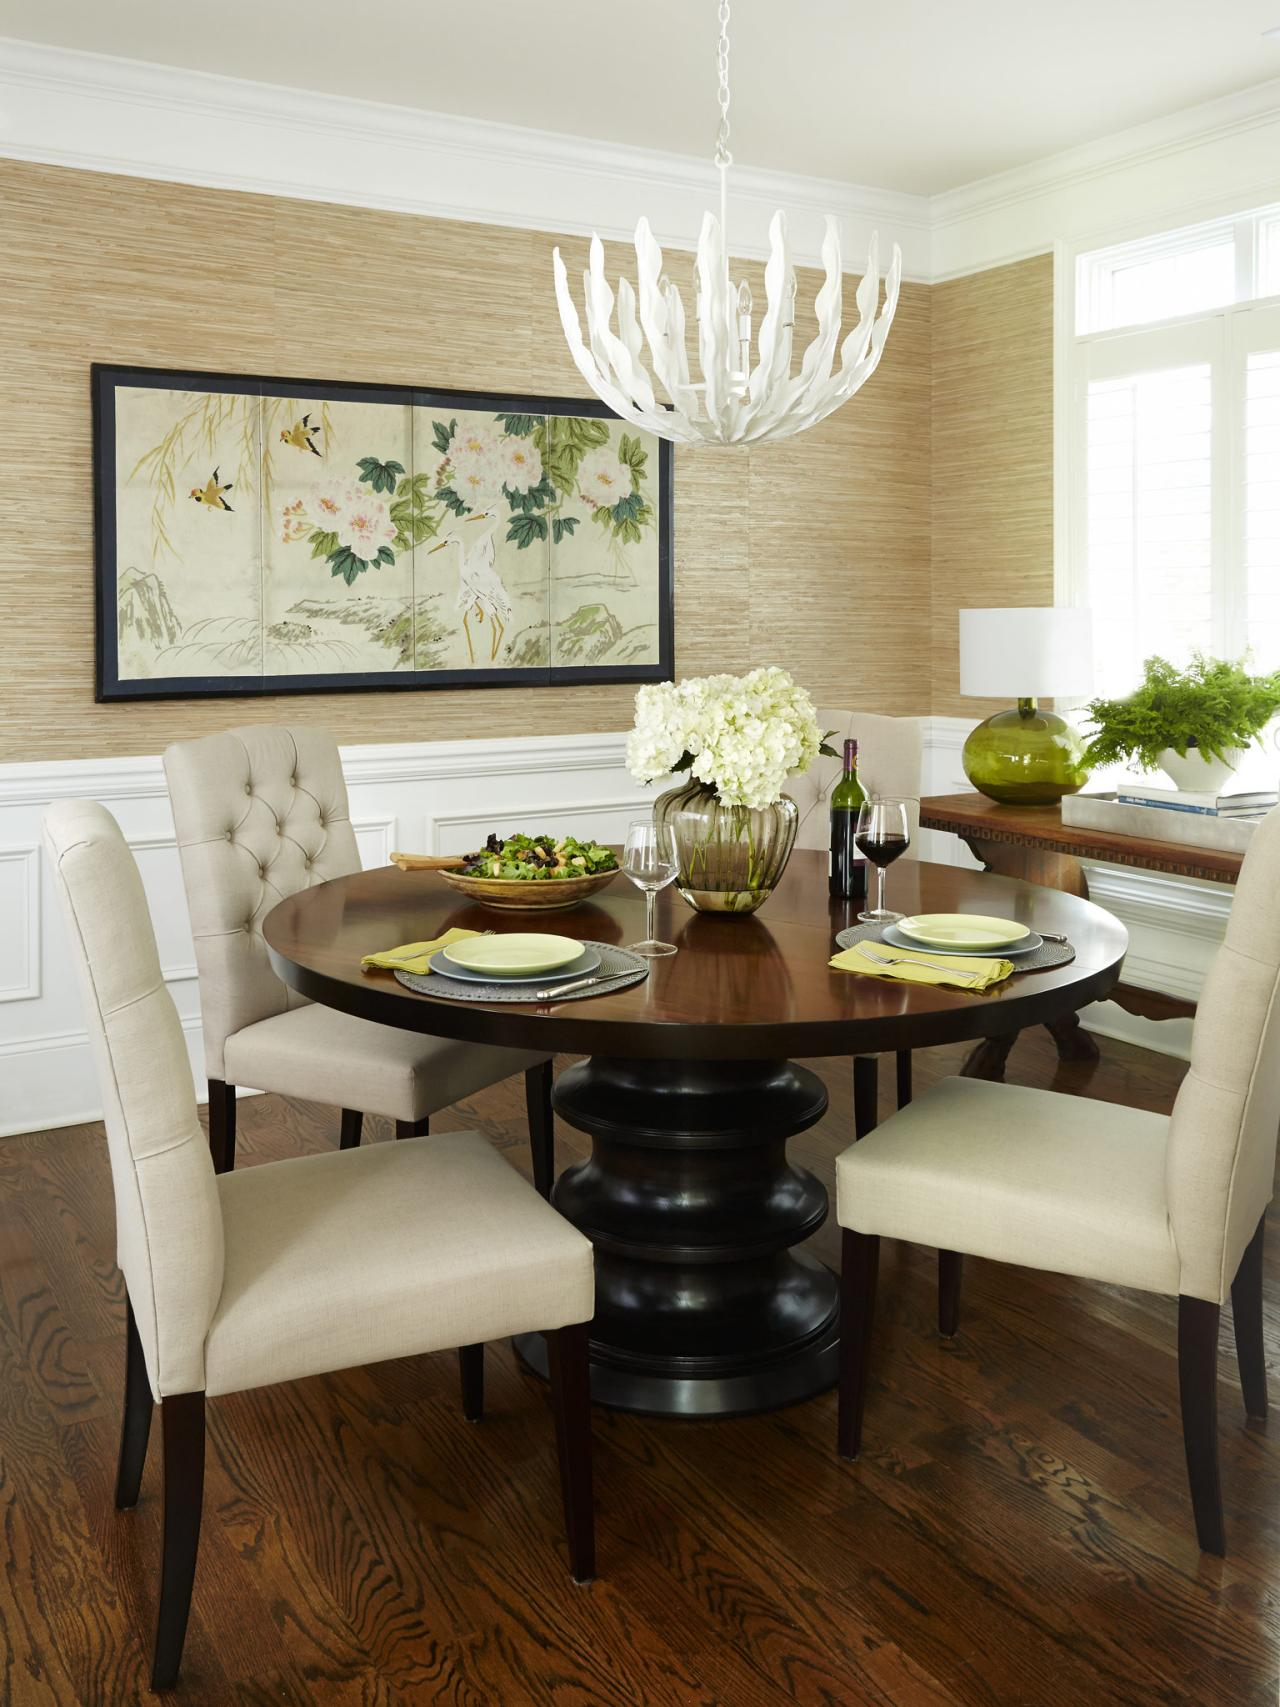 Kitchen Room Interior Design: Dining Room He Loves The Table Sandy And Angella Chose A